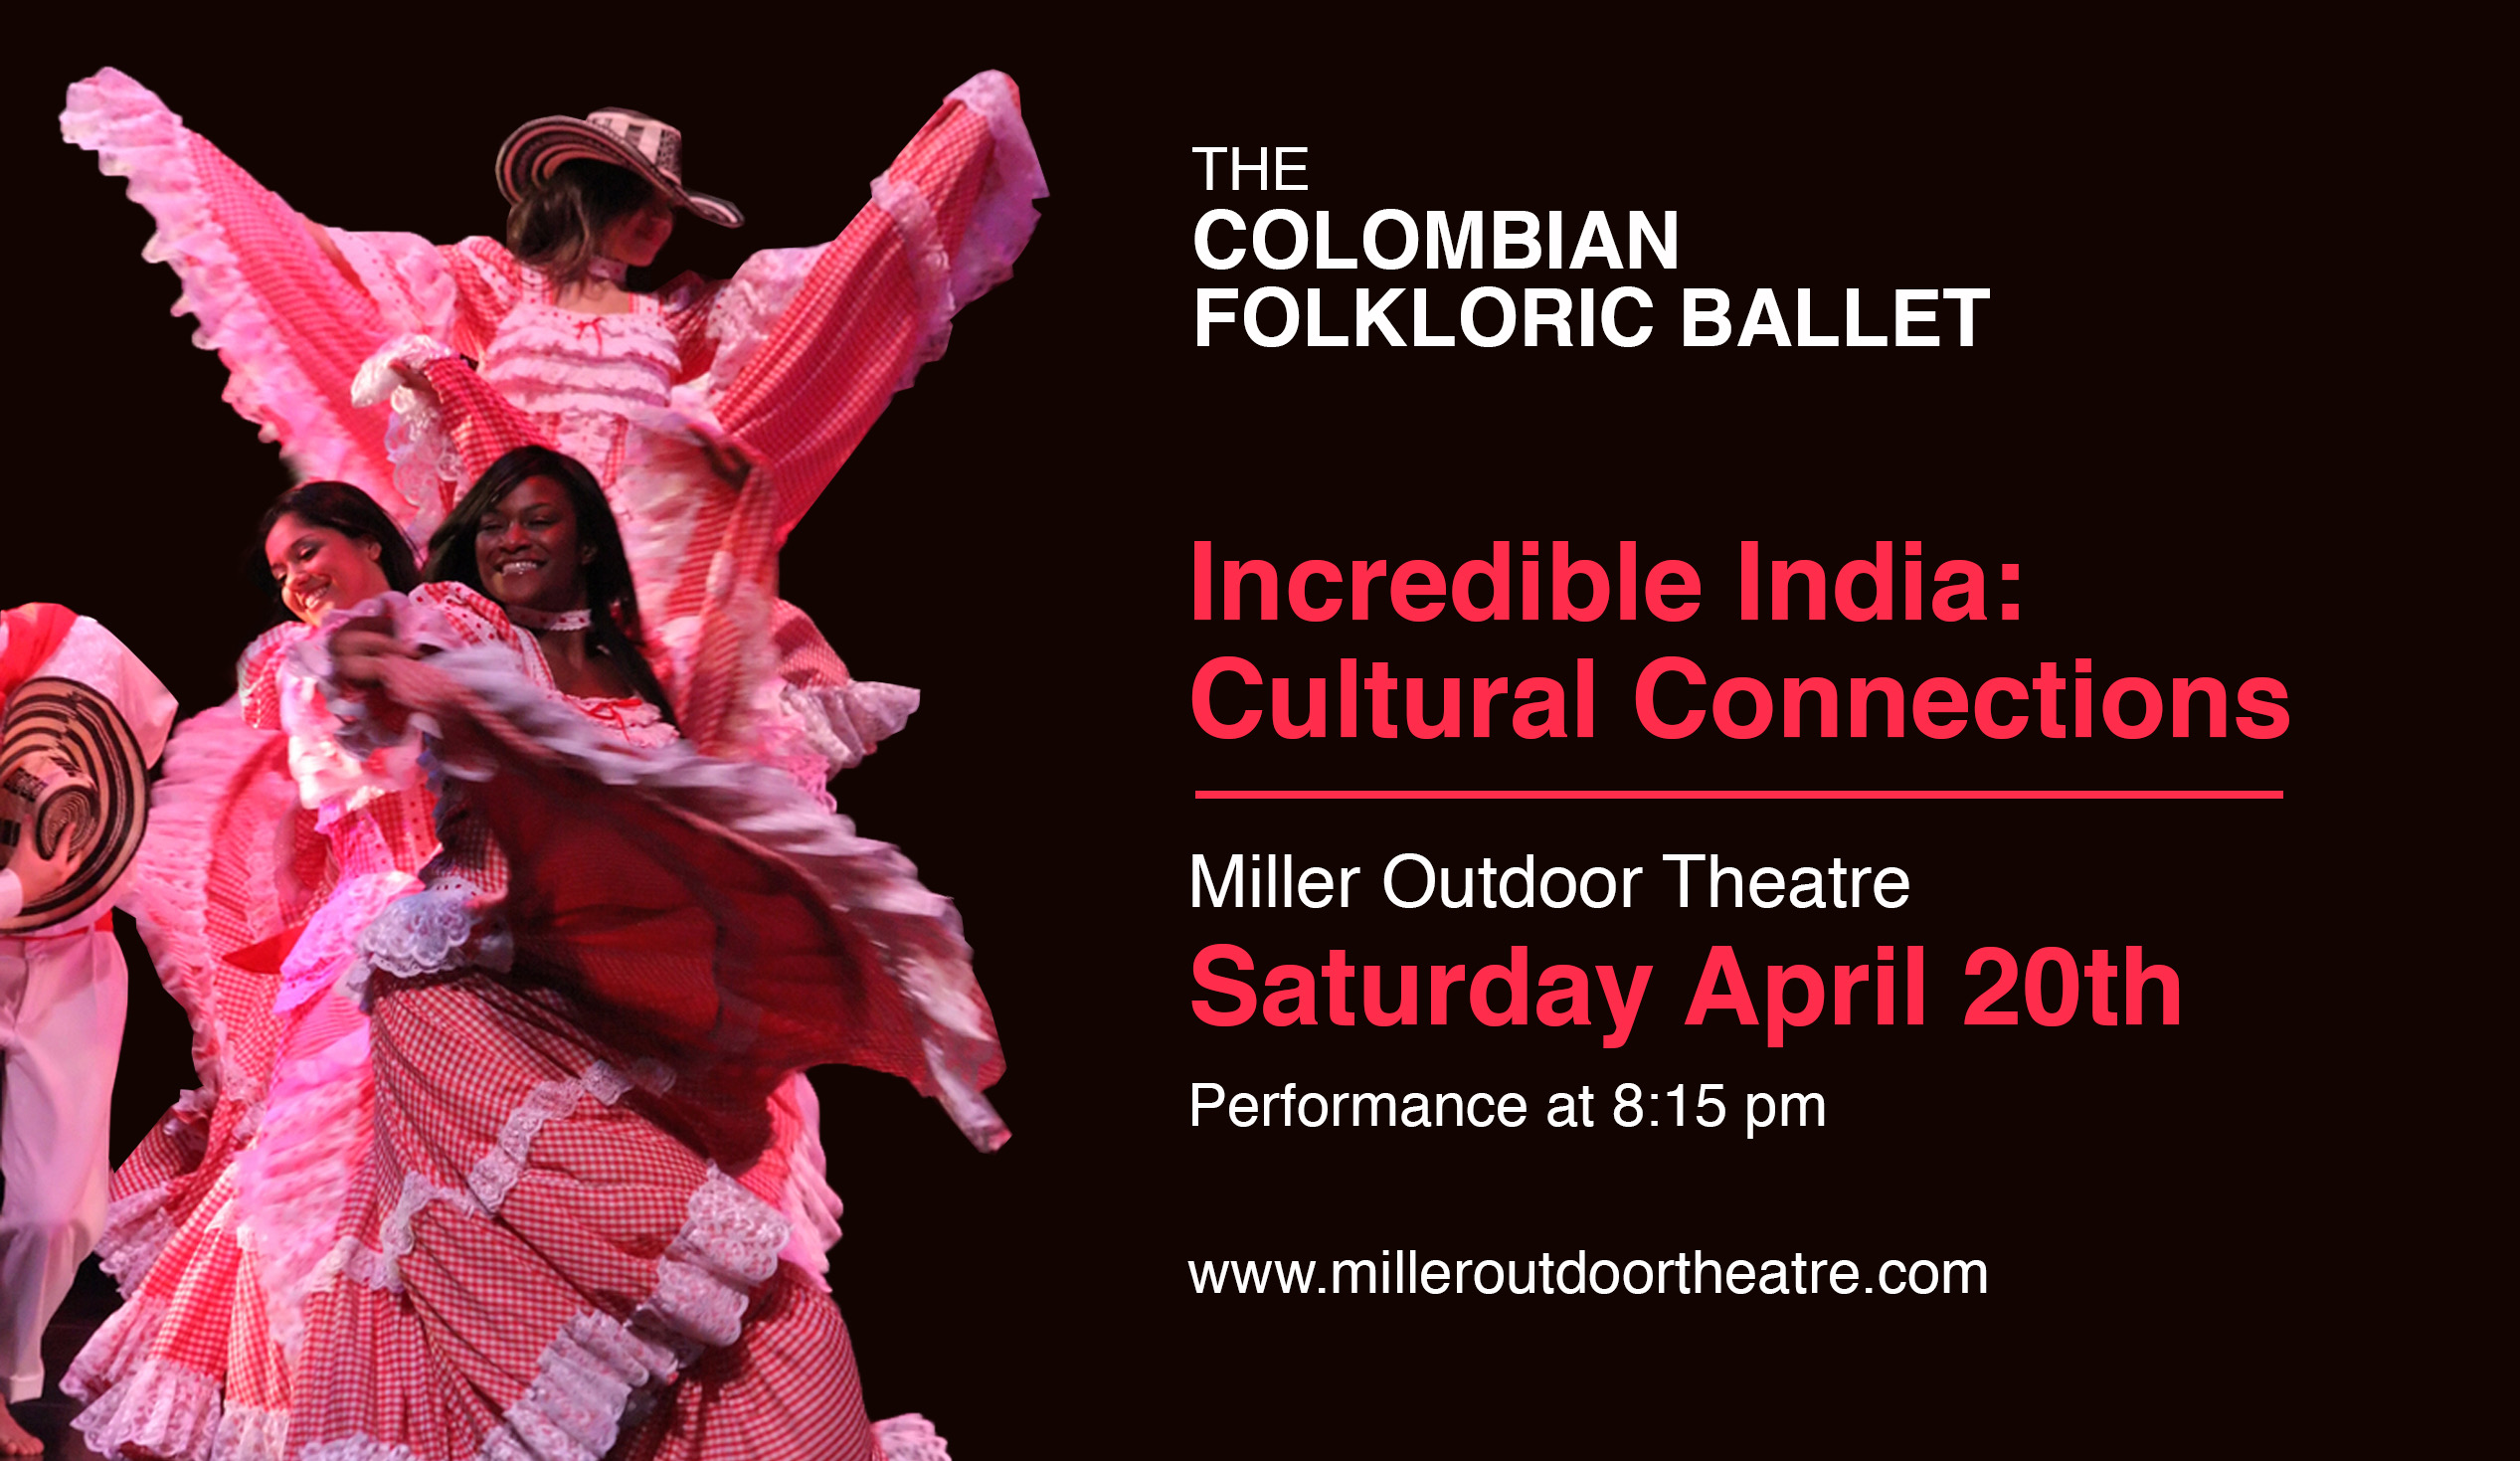 The Colombian Folkloric Ballet. 2019 Miller Theatre Incredible India Cultural Connectioncca